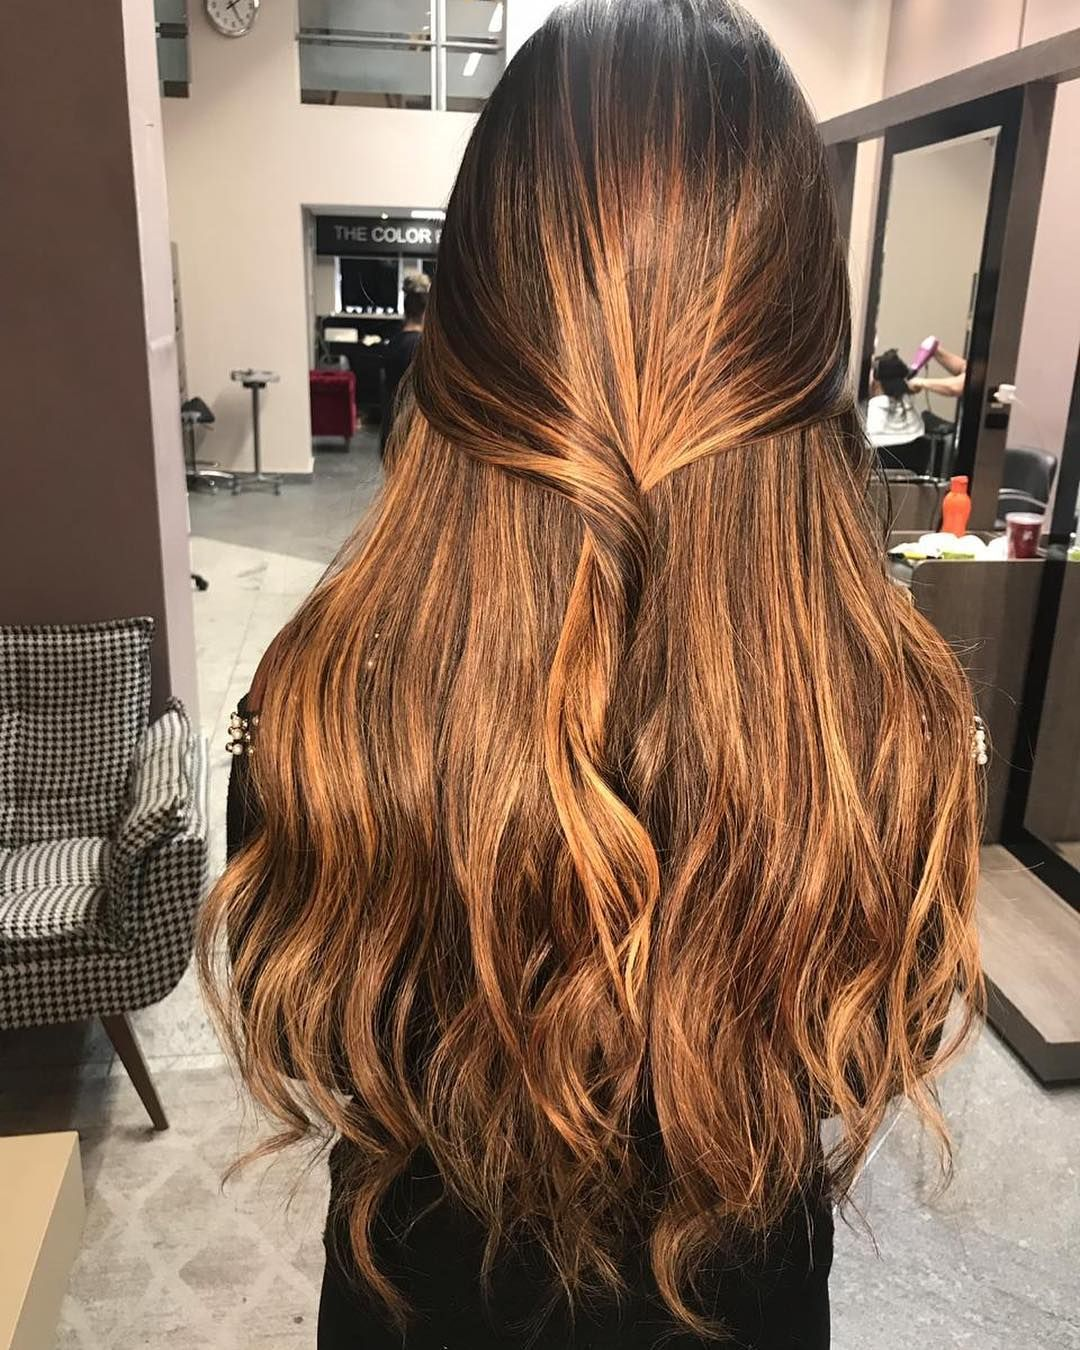 Brazilian Girls Are World Famous For Their Long Healthy Hair Click Here To See The New Brazilian Hair Color Trend That S S Hair Hair Beauty Hair Color Trends